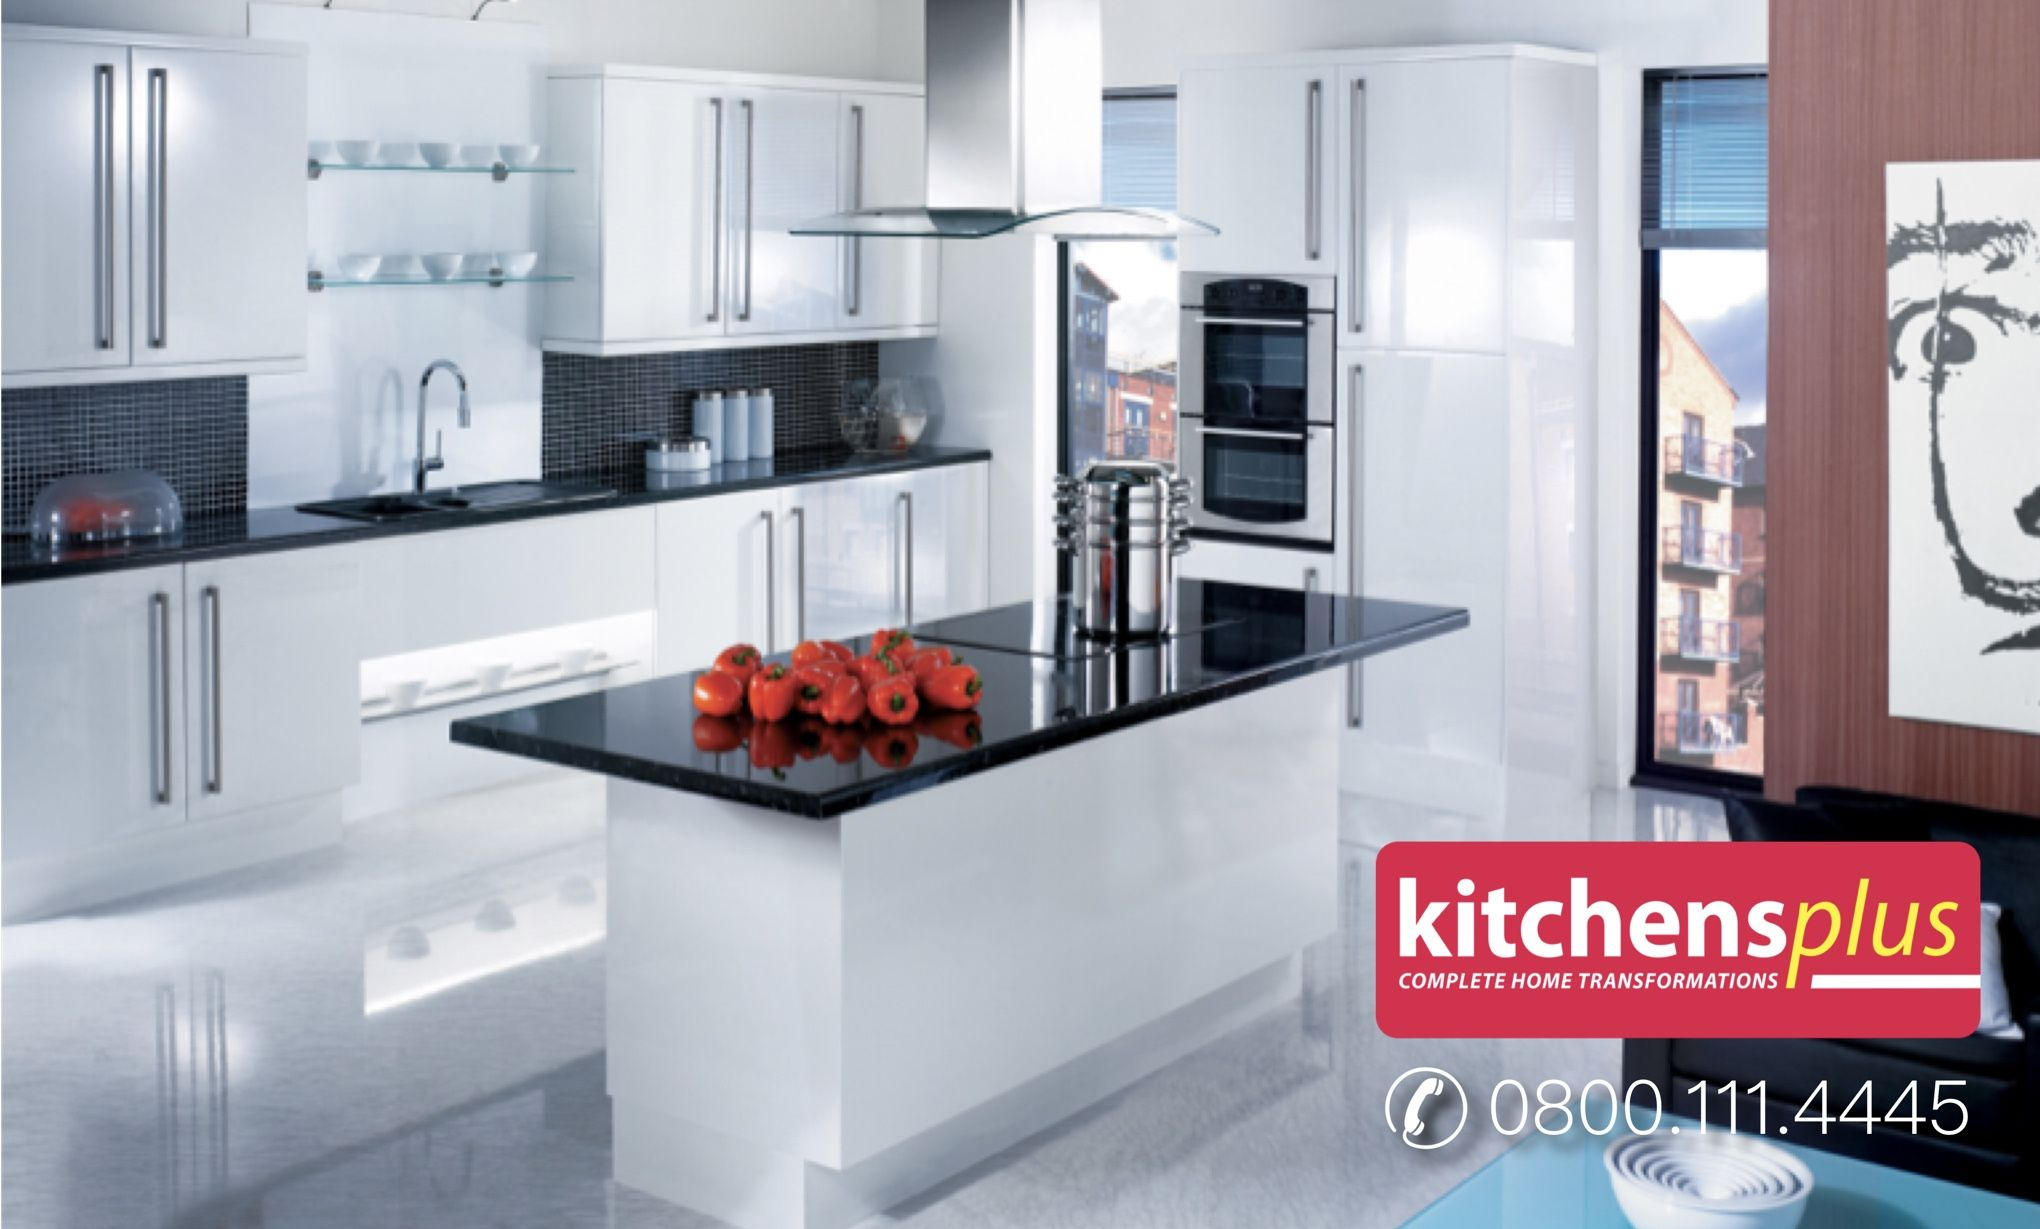 If you want to learn more about creating a gorgeous custom #kitchen ...